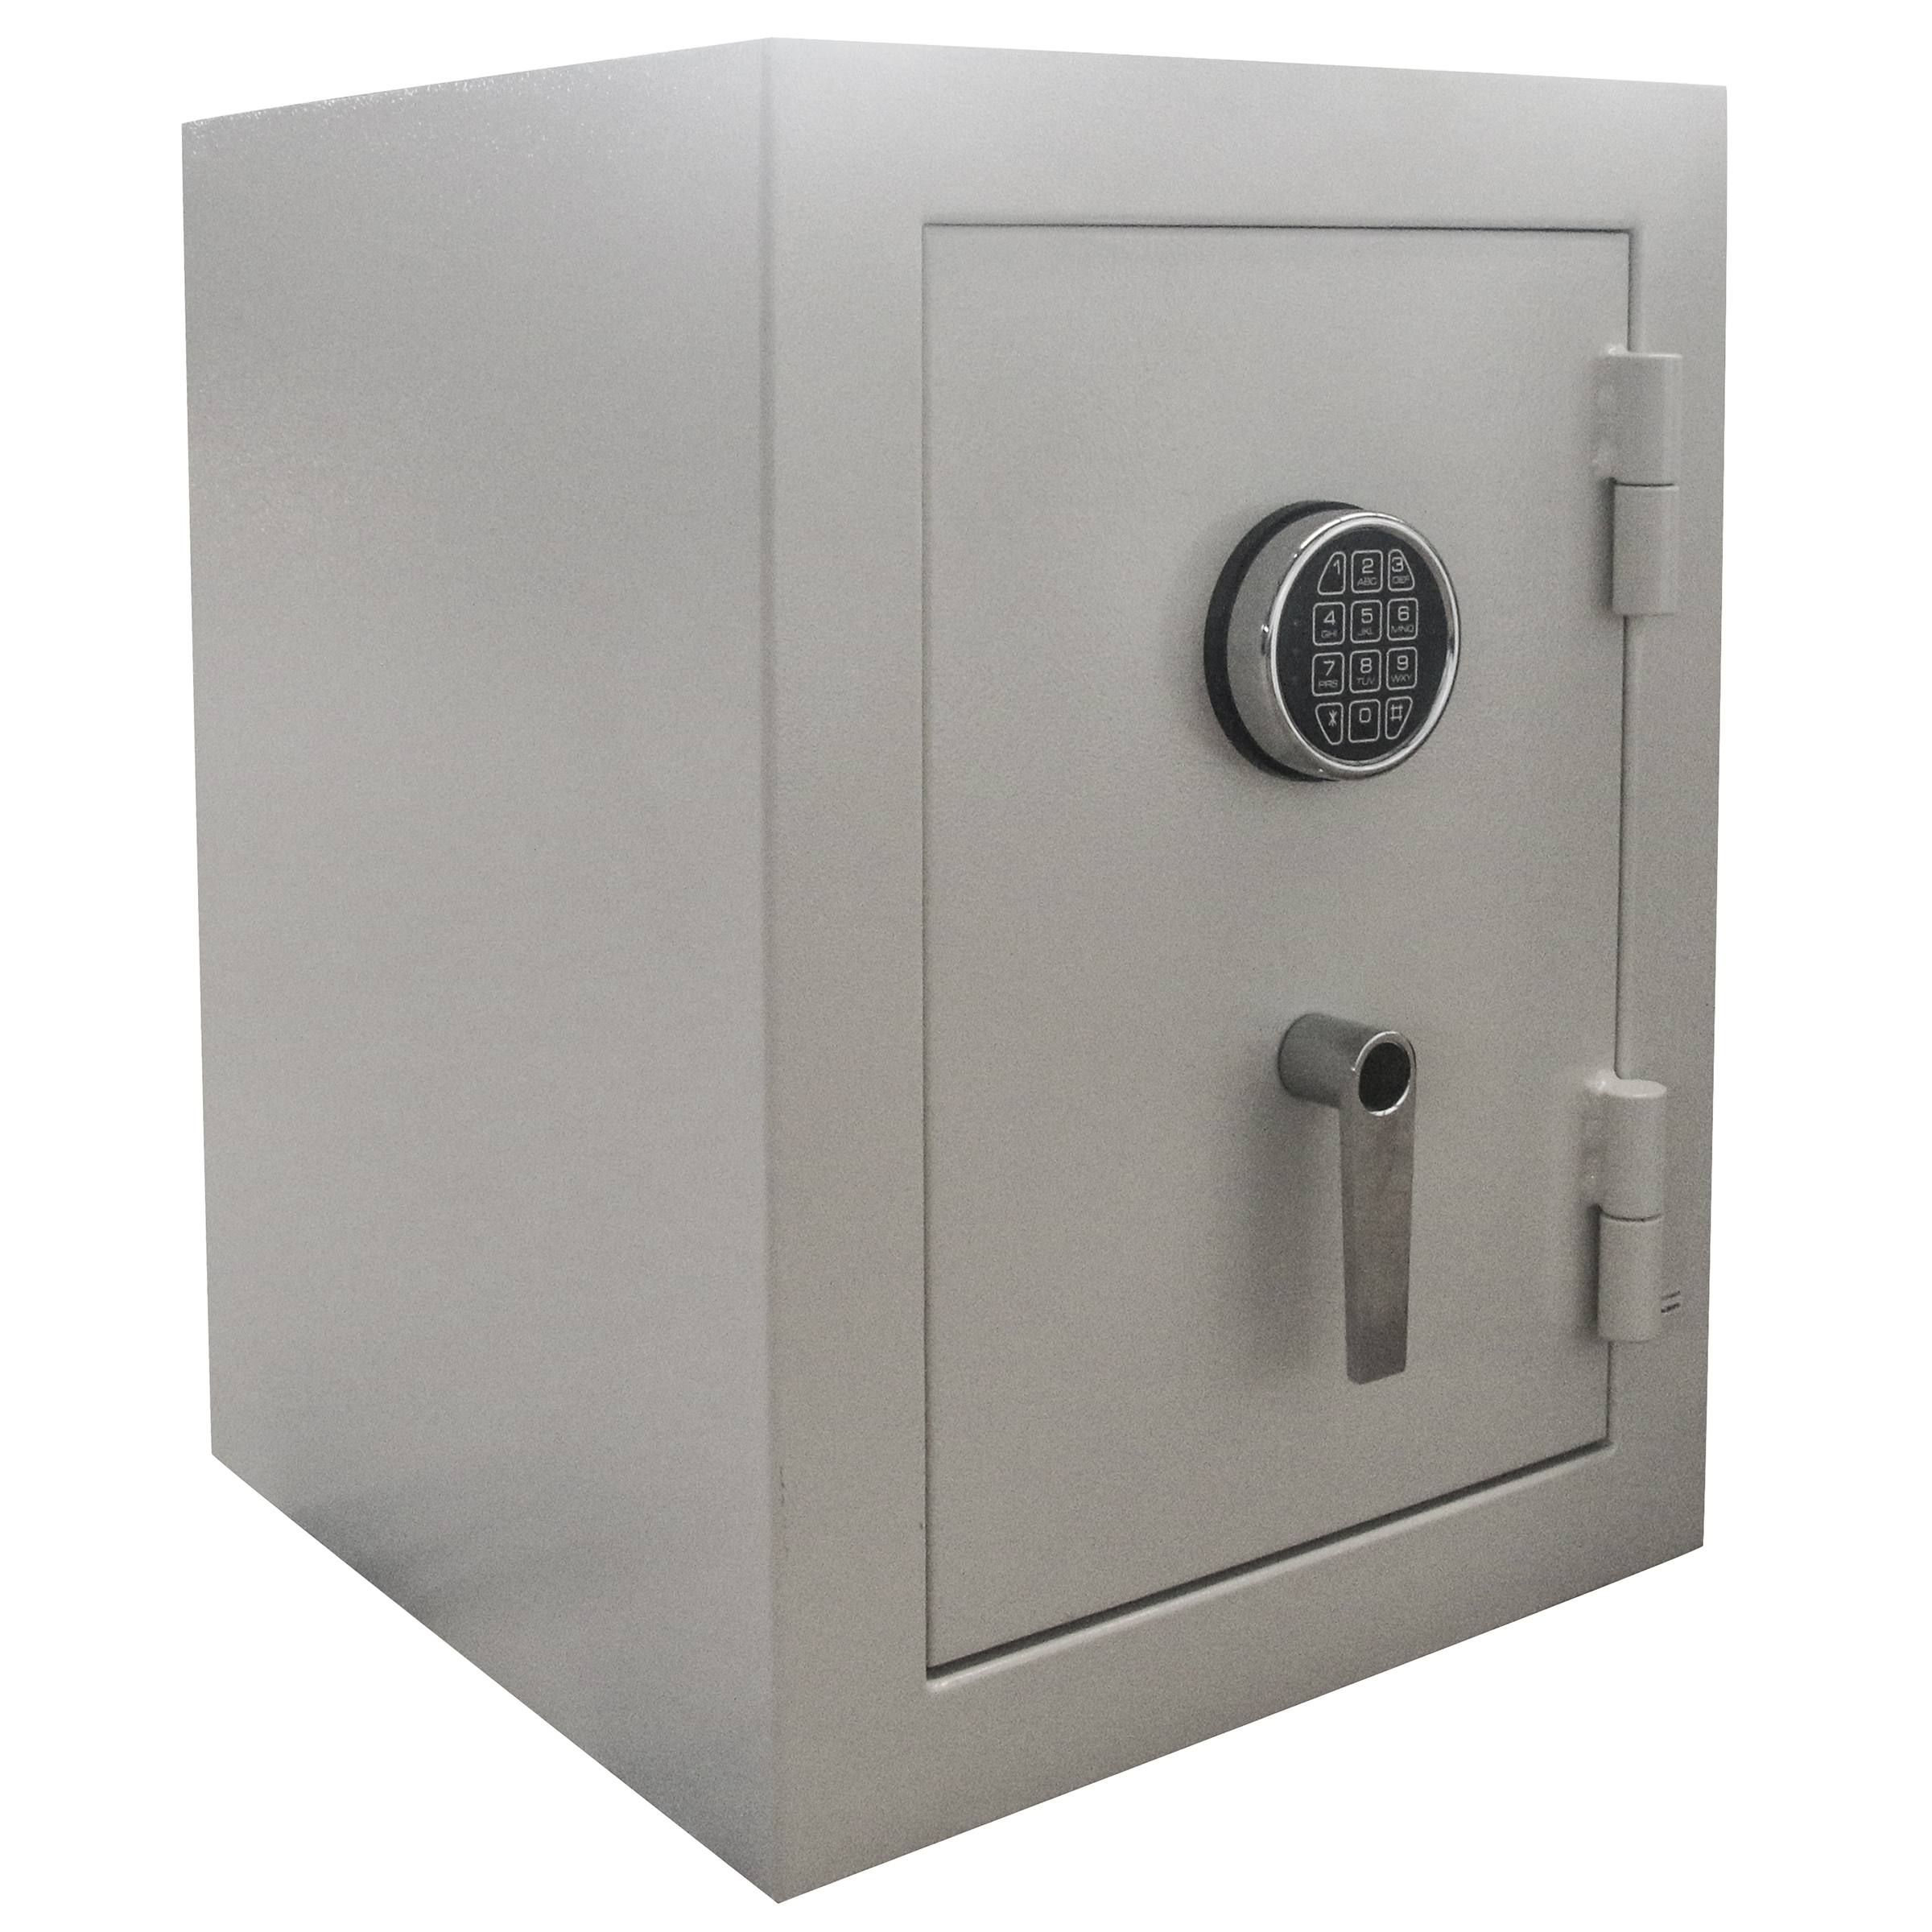 Jewelry Safe with Electronic Lock - Beige